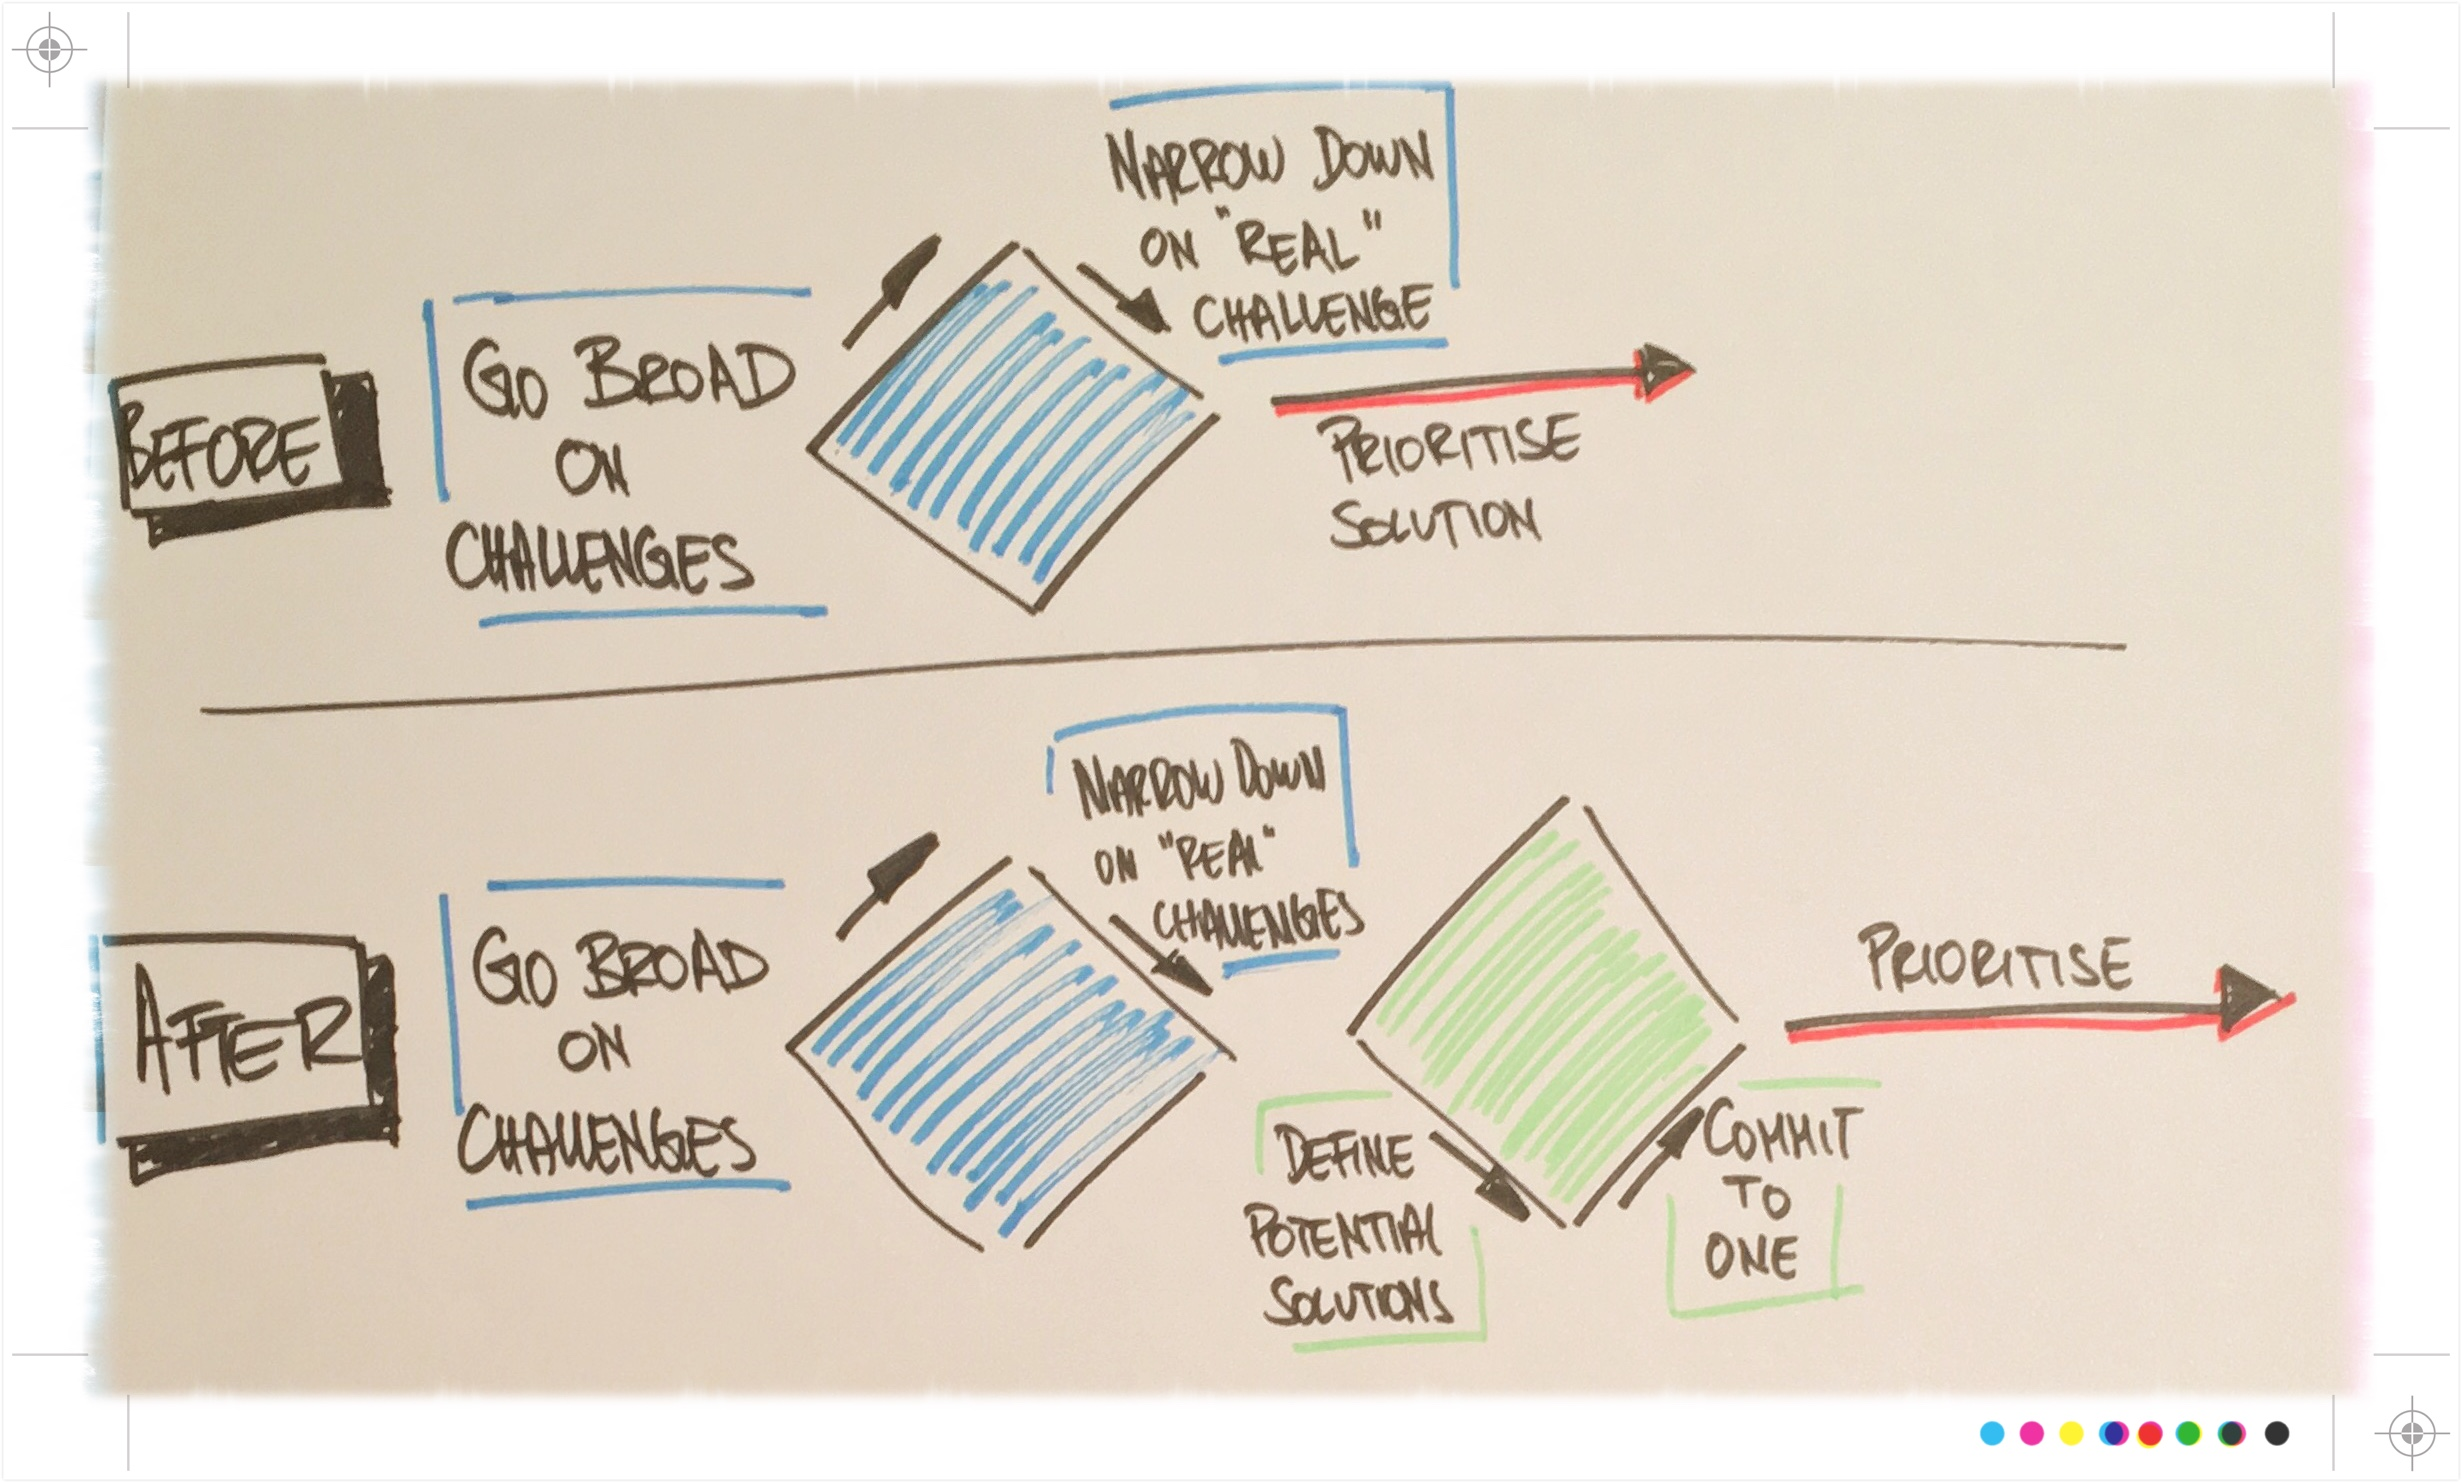 A sketch illustrating the different flows of conversation before and after the workshop